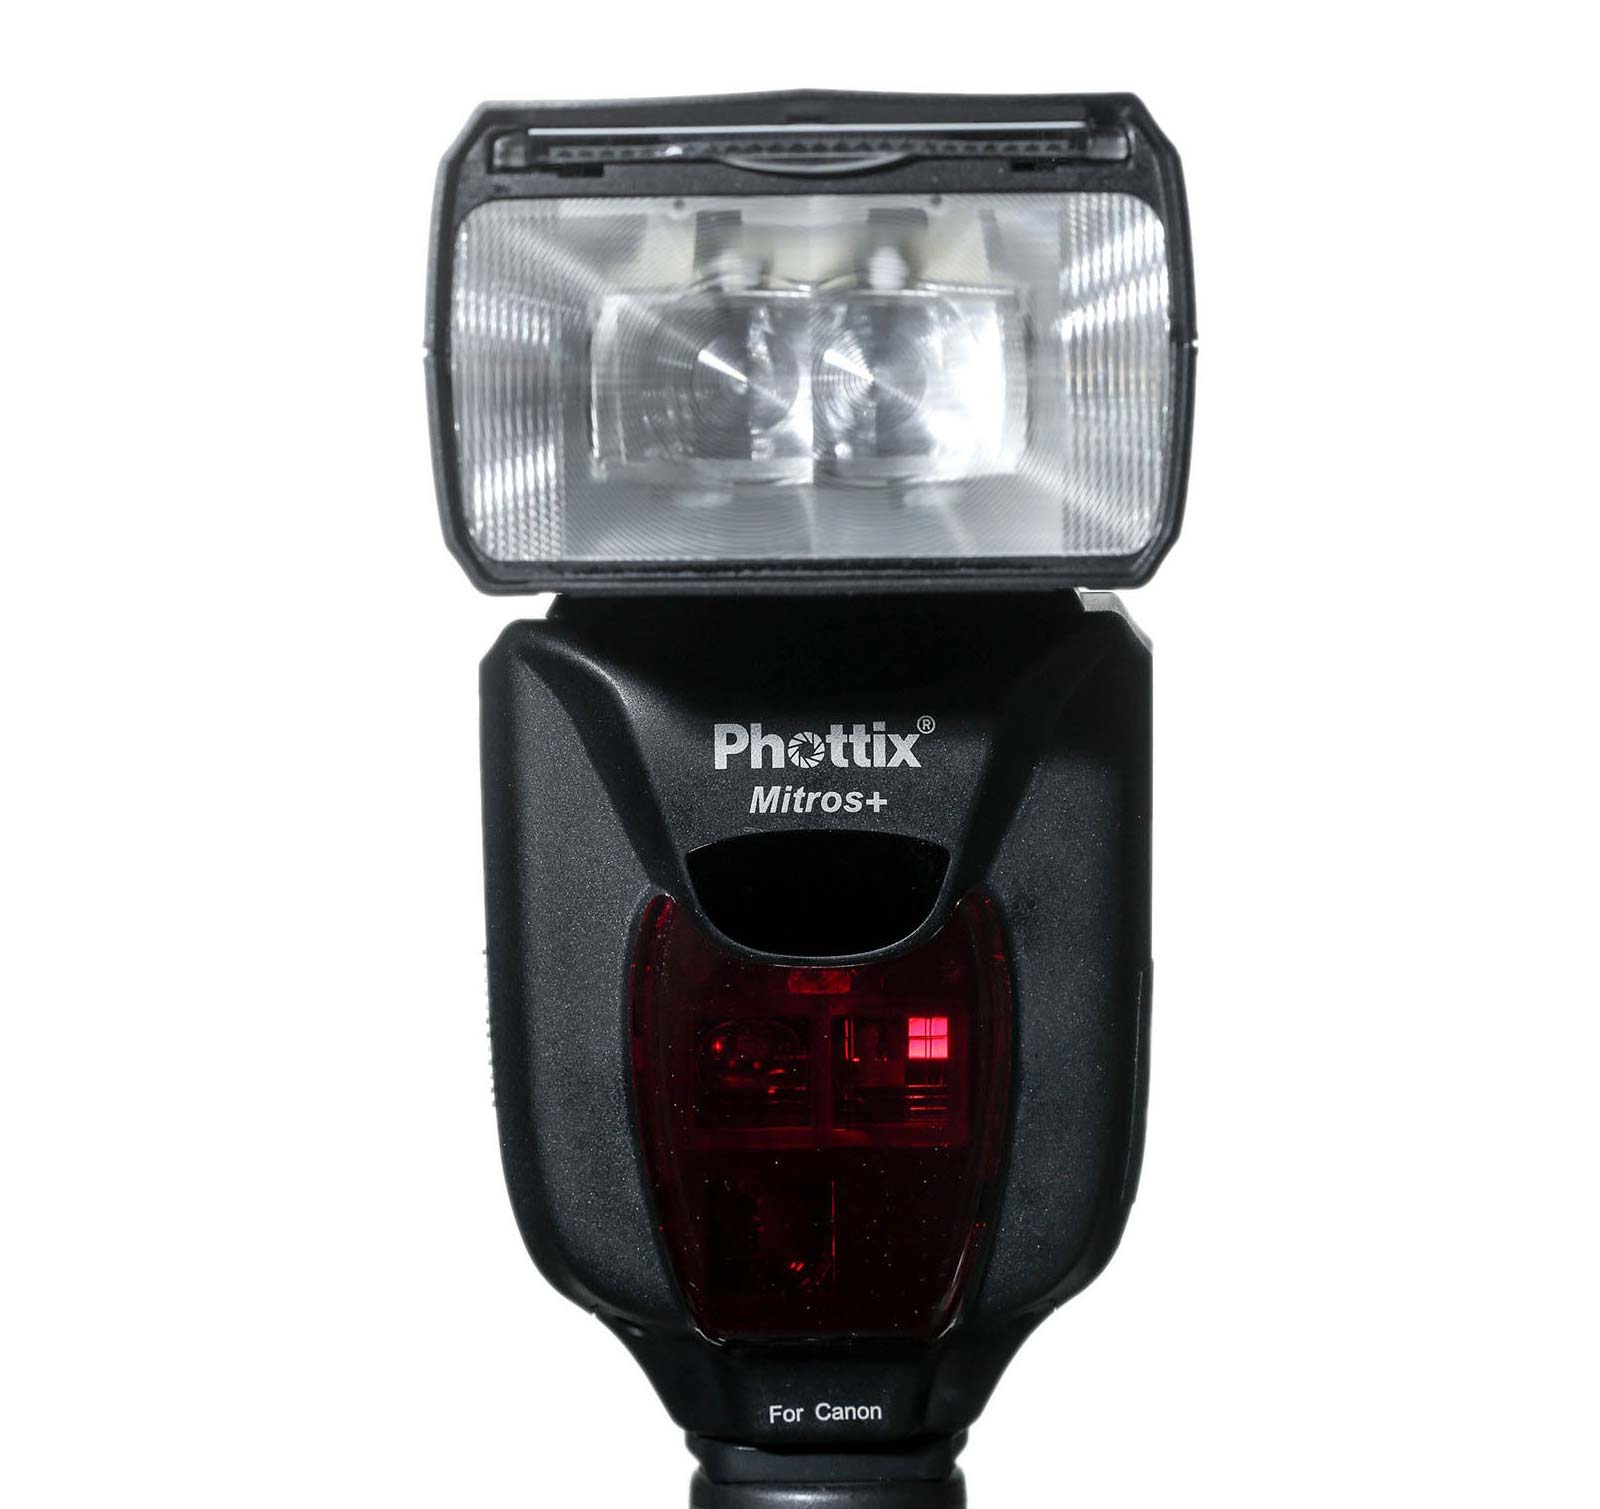 Phottix Mitros Plus Canon Transceiver Flash